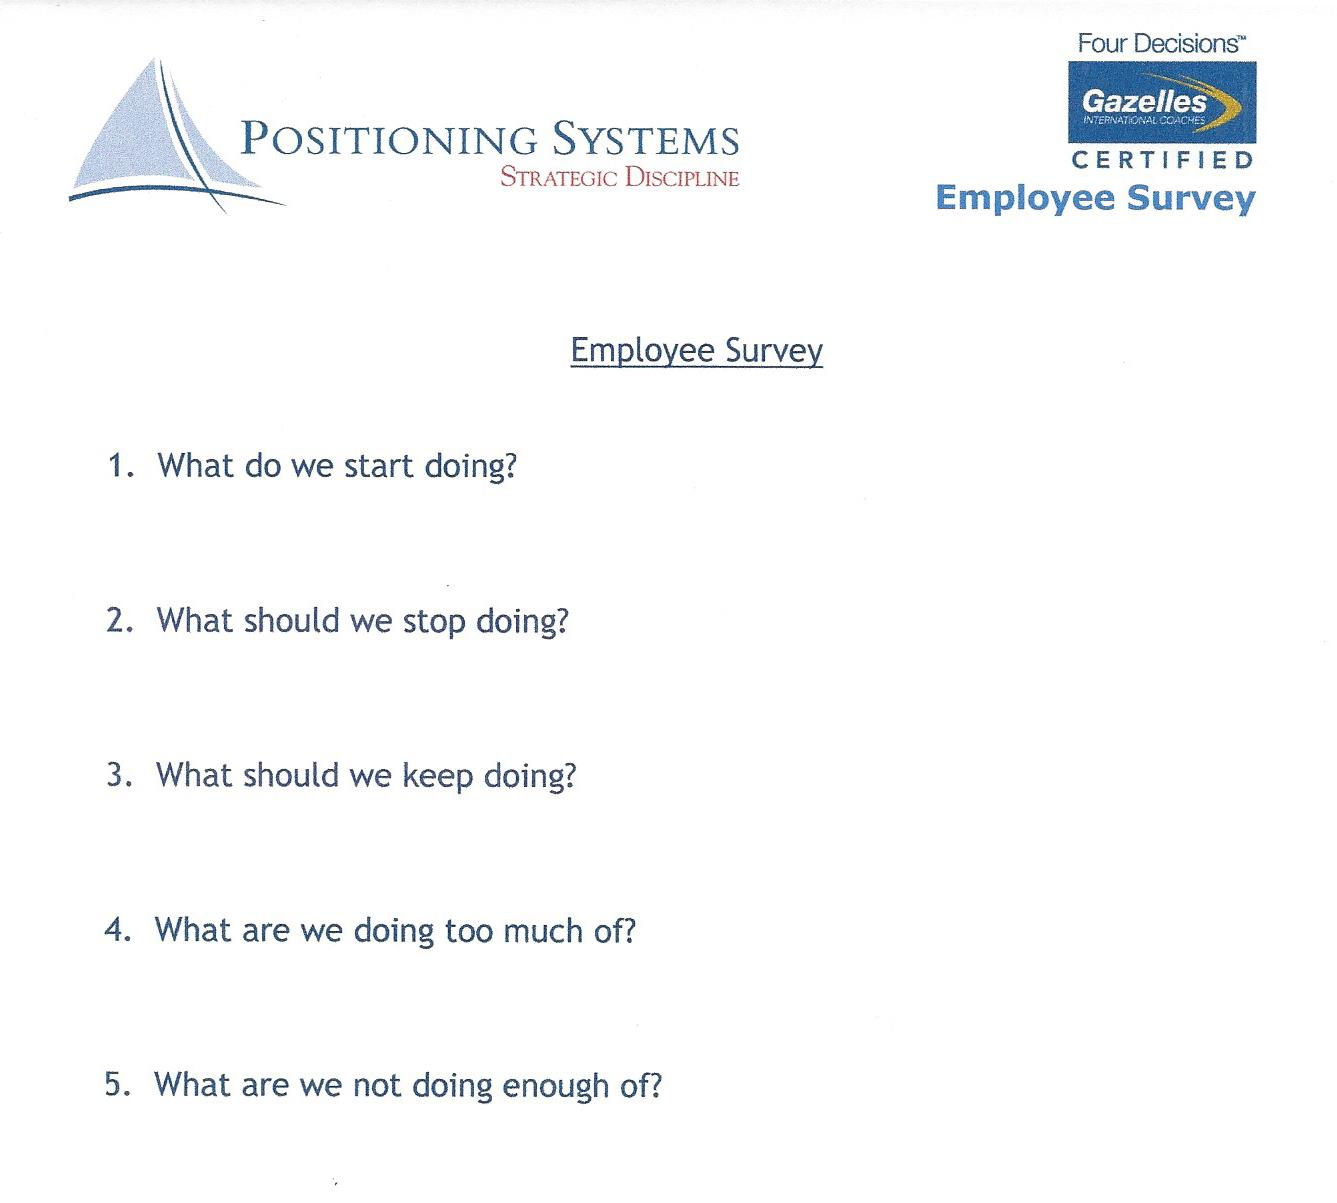 Employee Survey 5 Q's (Start, Stop, Keep, Too Much, Not Enough).jpg